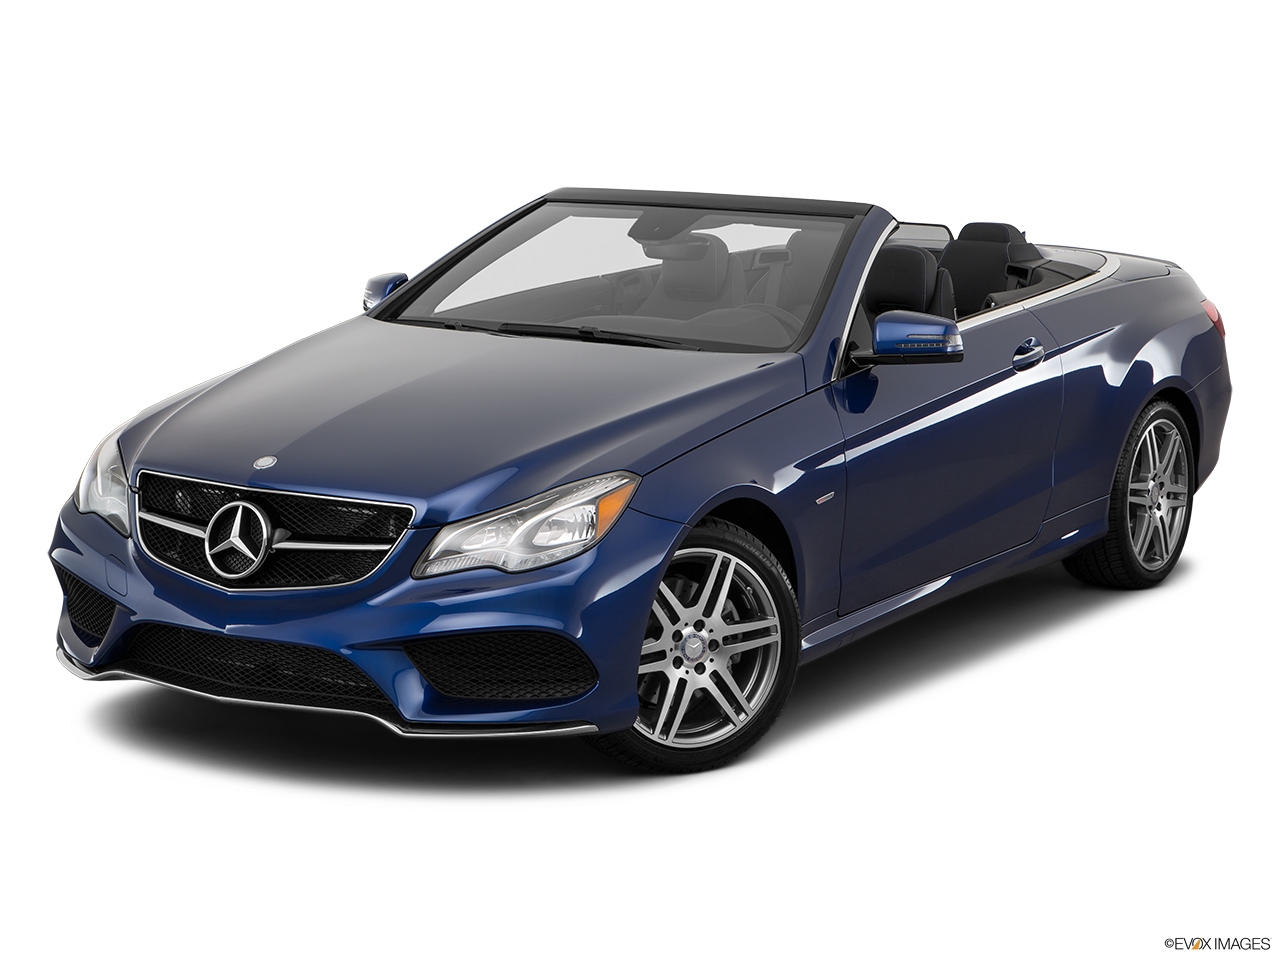 2017 mercedes benz e class cabriolet prices in bahrain for Mercedes benz bahrain